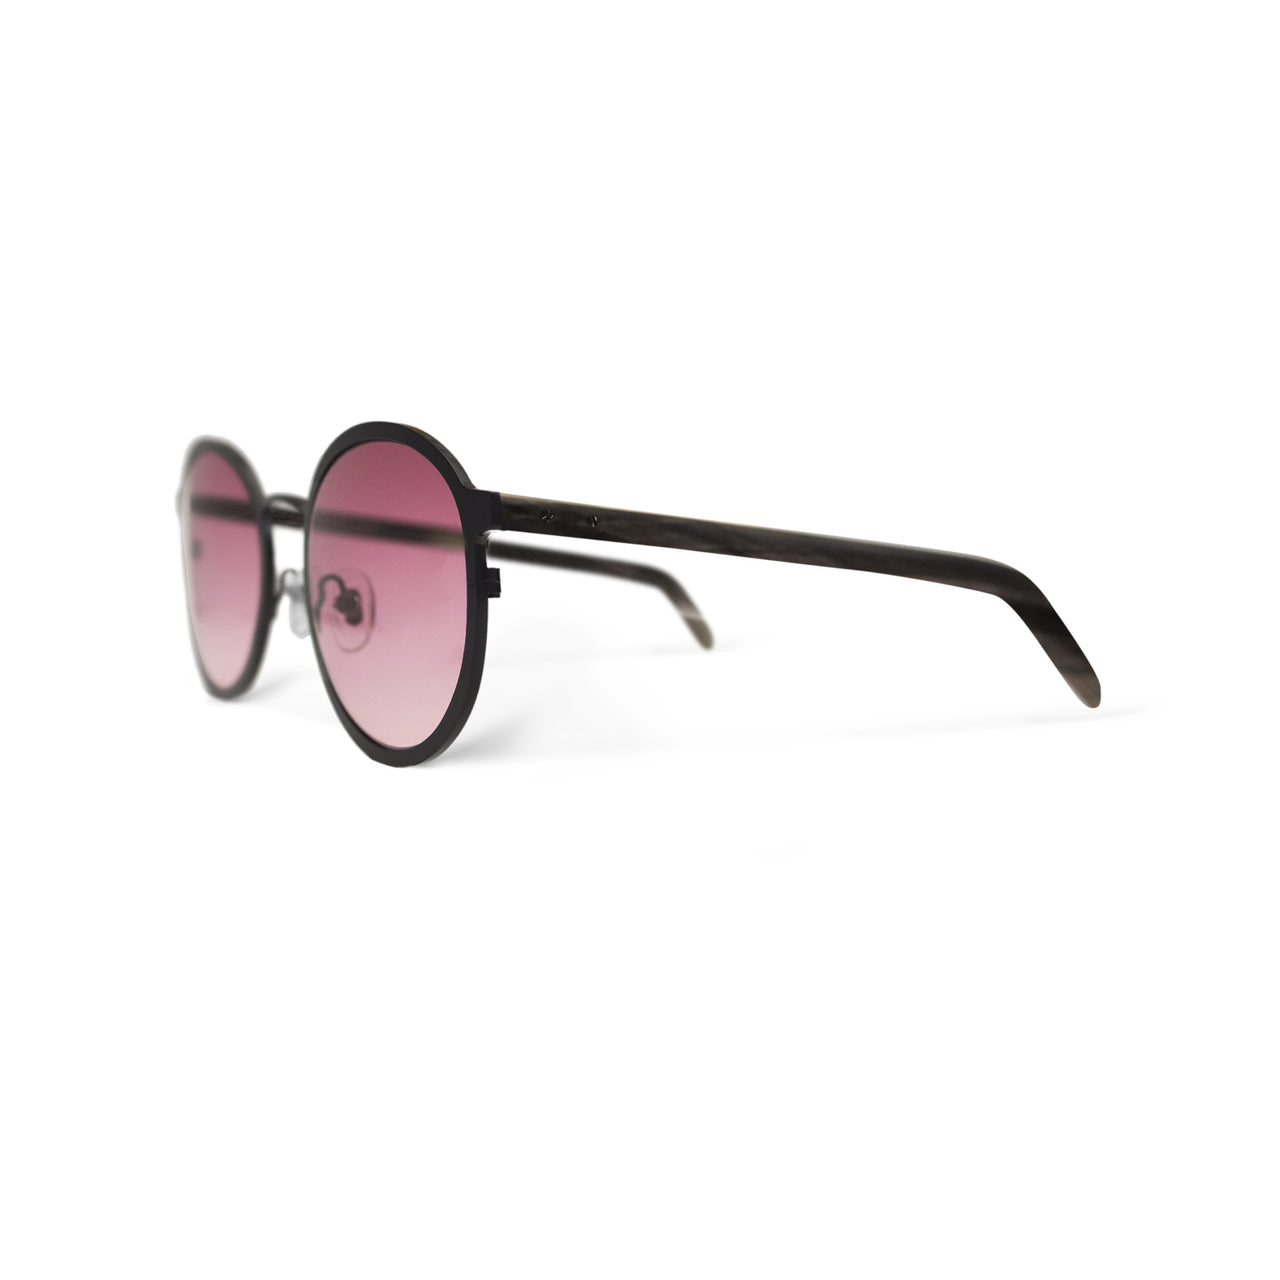 Metal / Horn. Matte Black / Dark. Blush Lens. - BLYSZAK eyewear eyewear - eyewear, optical, sunglasses